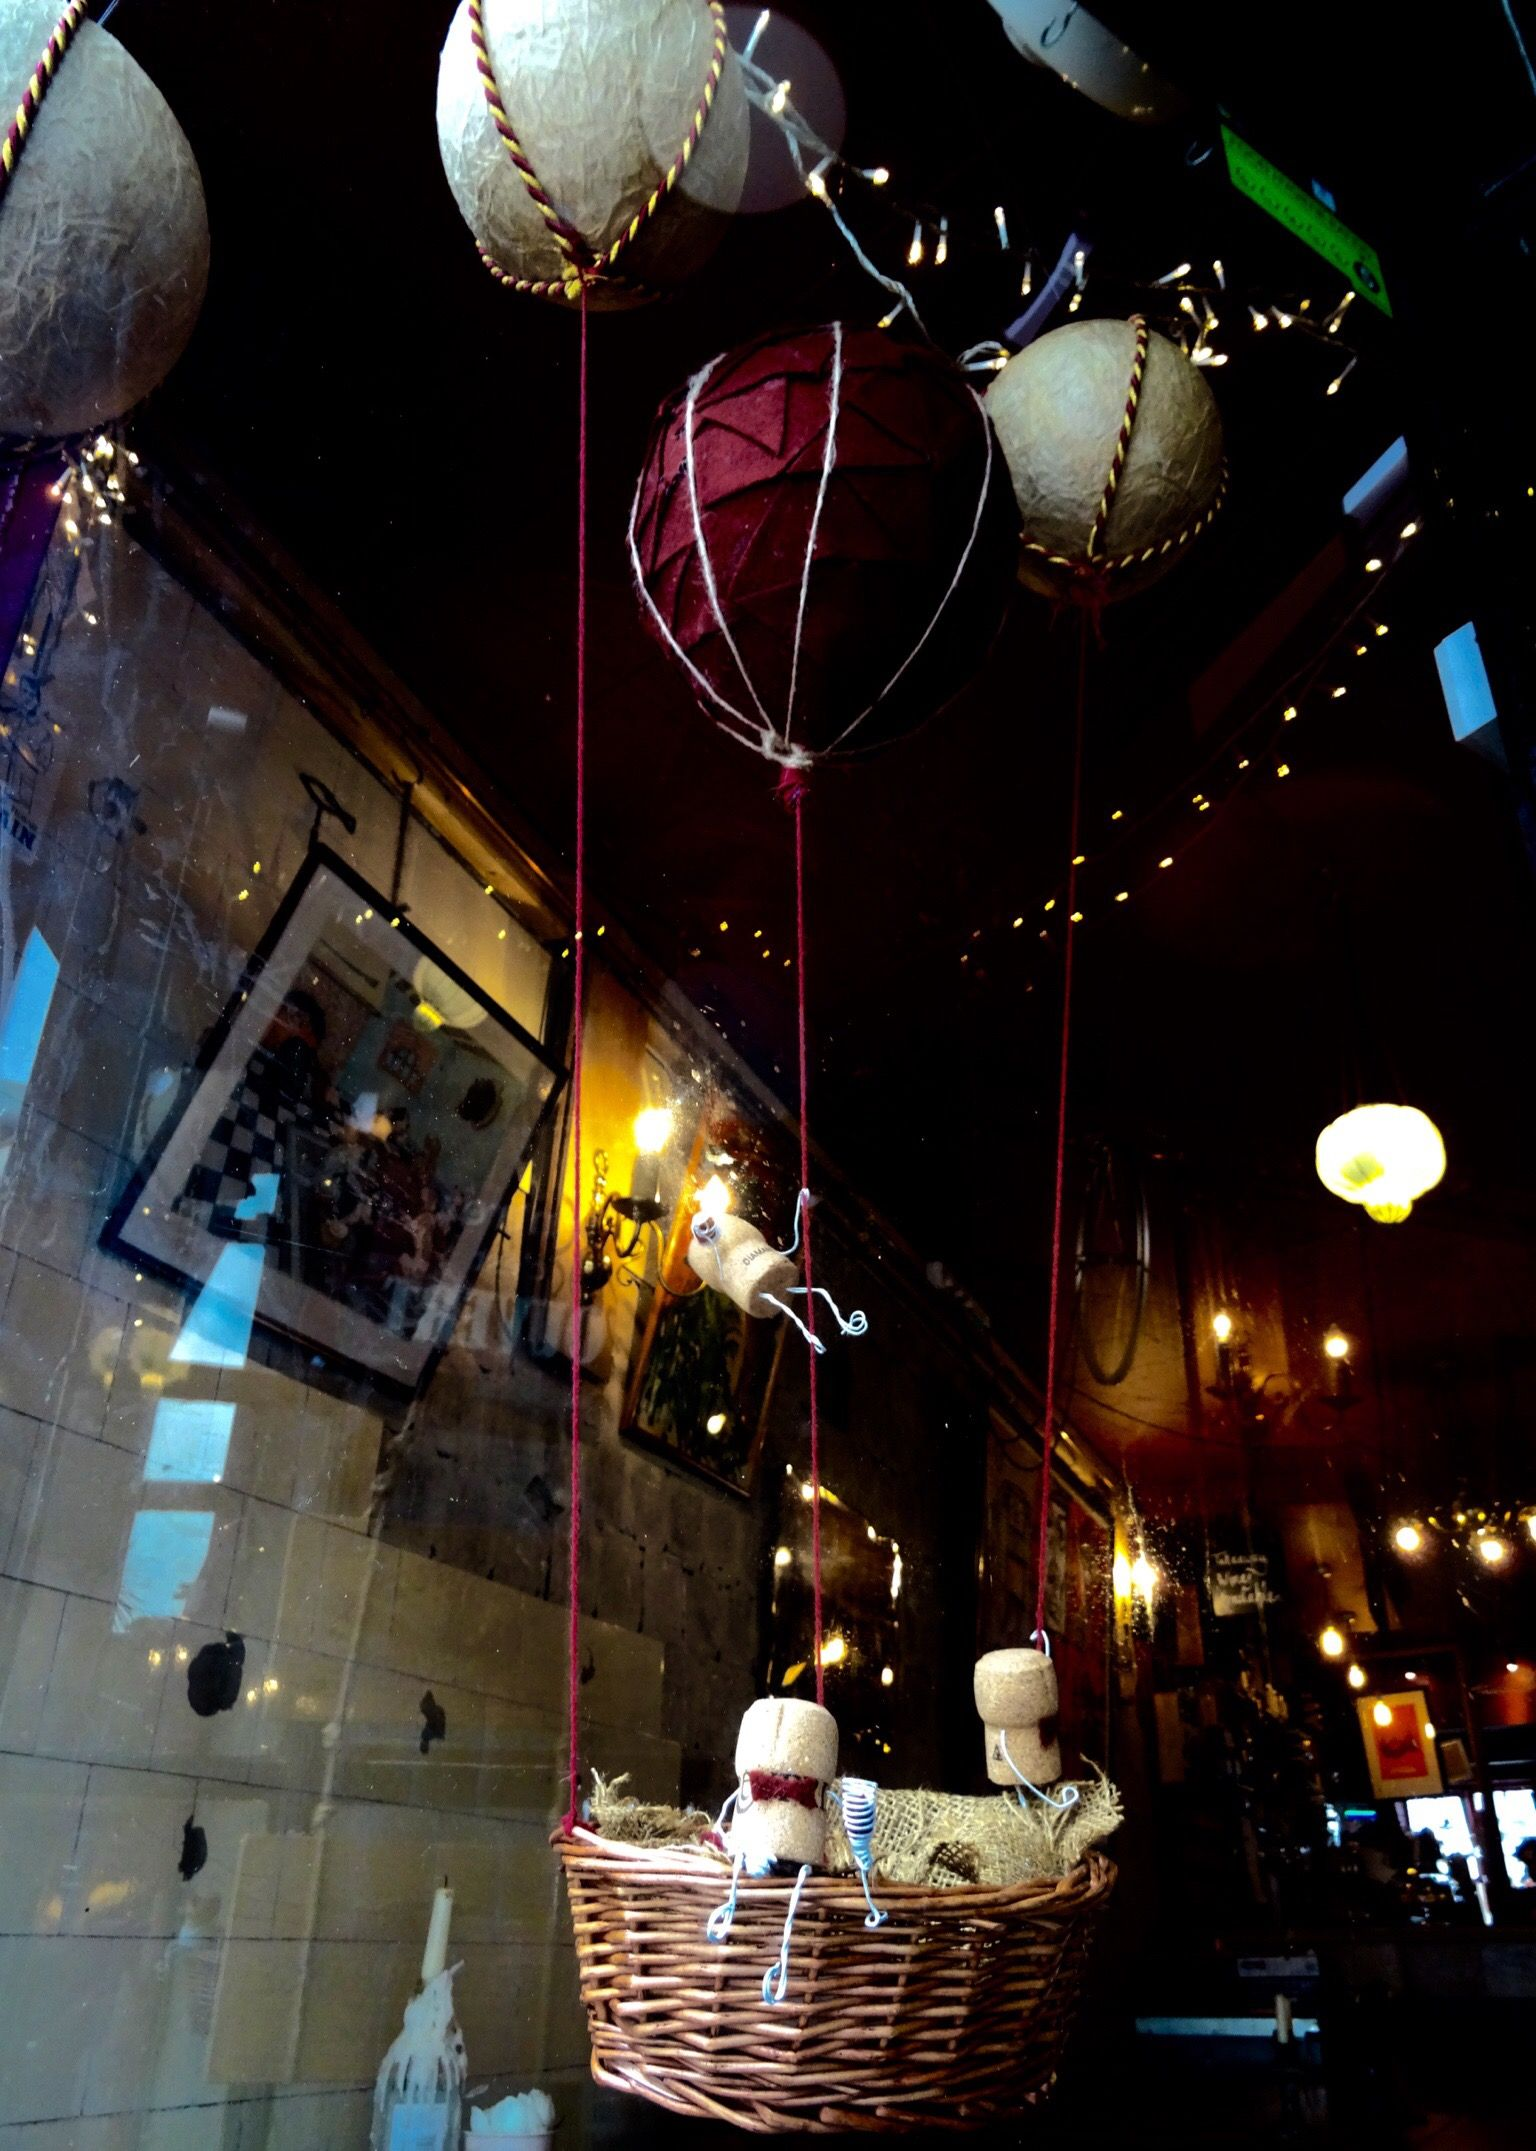 Our new window display September 2016. Hot air balloons